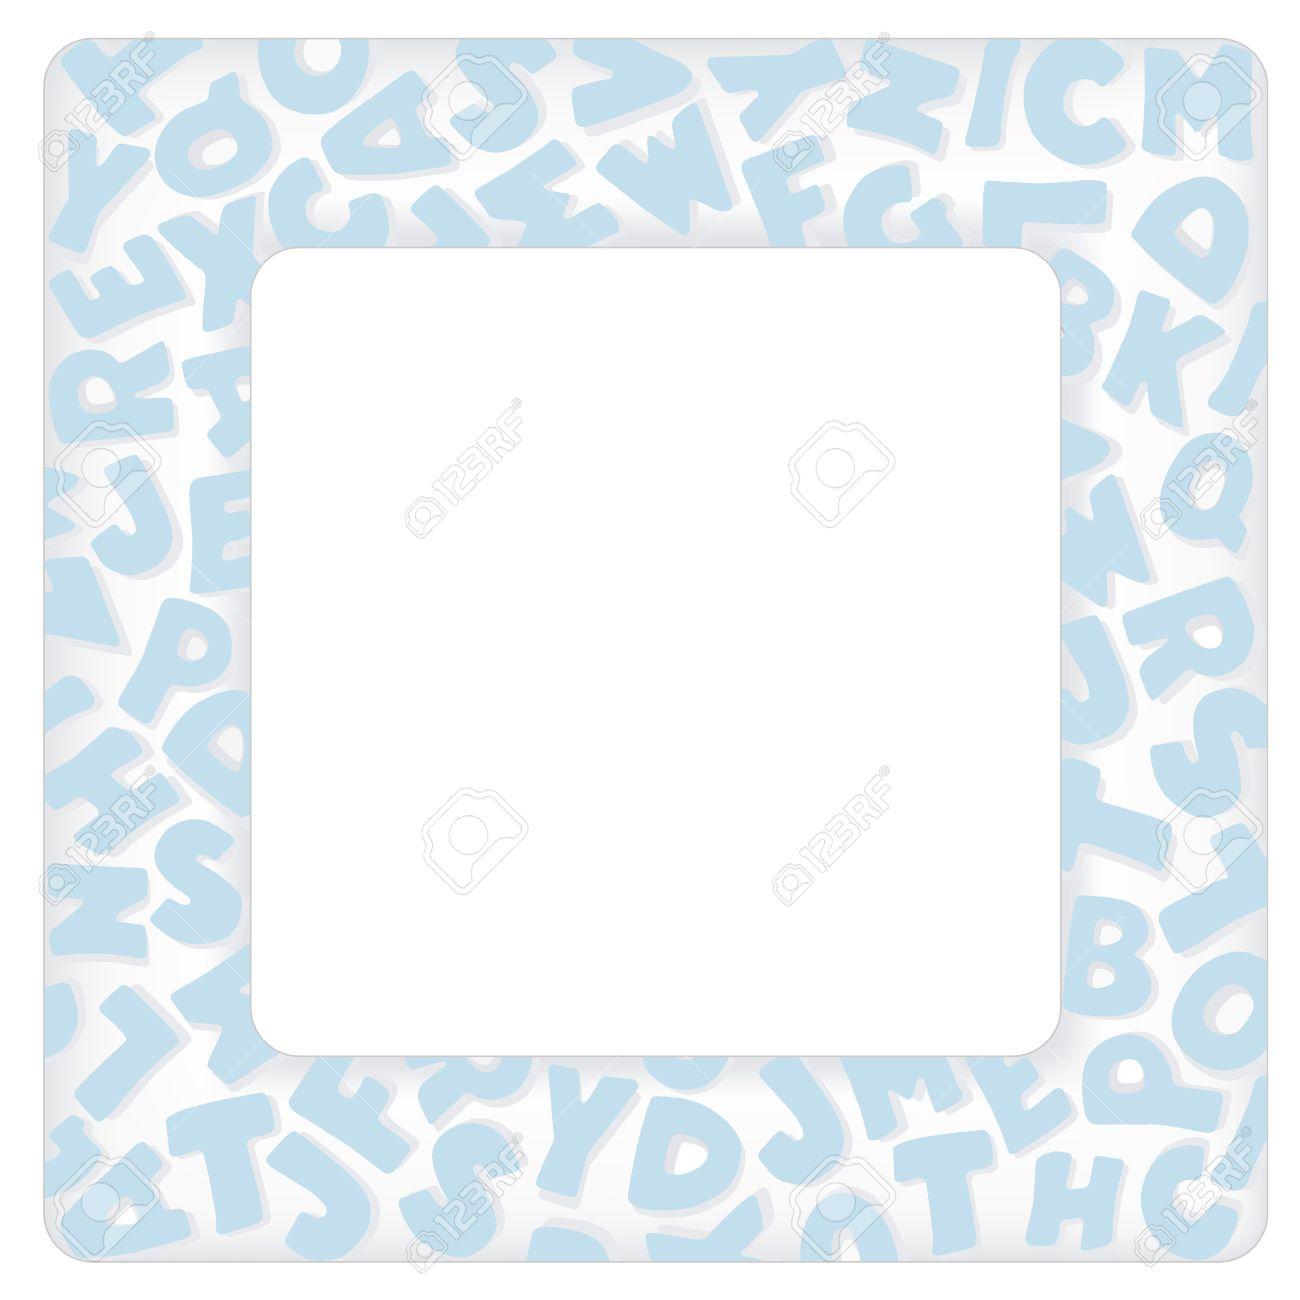 Alphabet frame square pastel blue letter border with copy space do it yourself crafts alphabet frame square pastel blue letter border with copy space for baby books albums solutioingenieria Choice Image